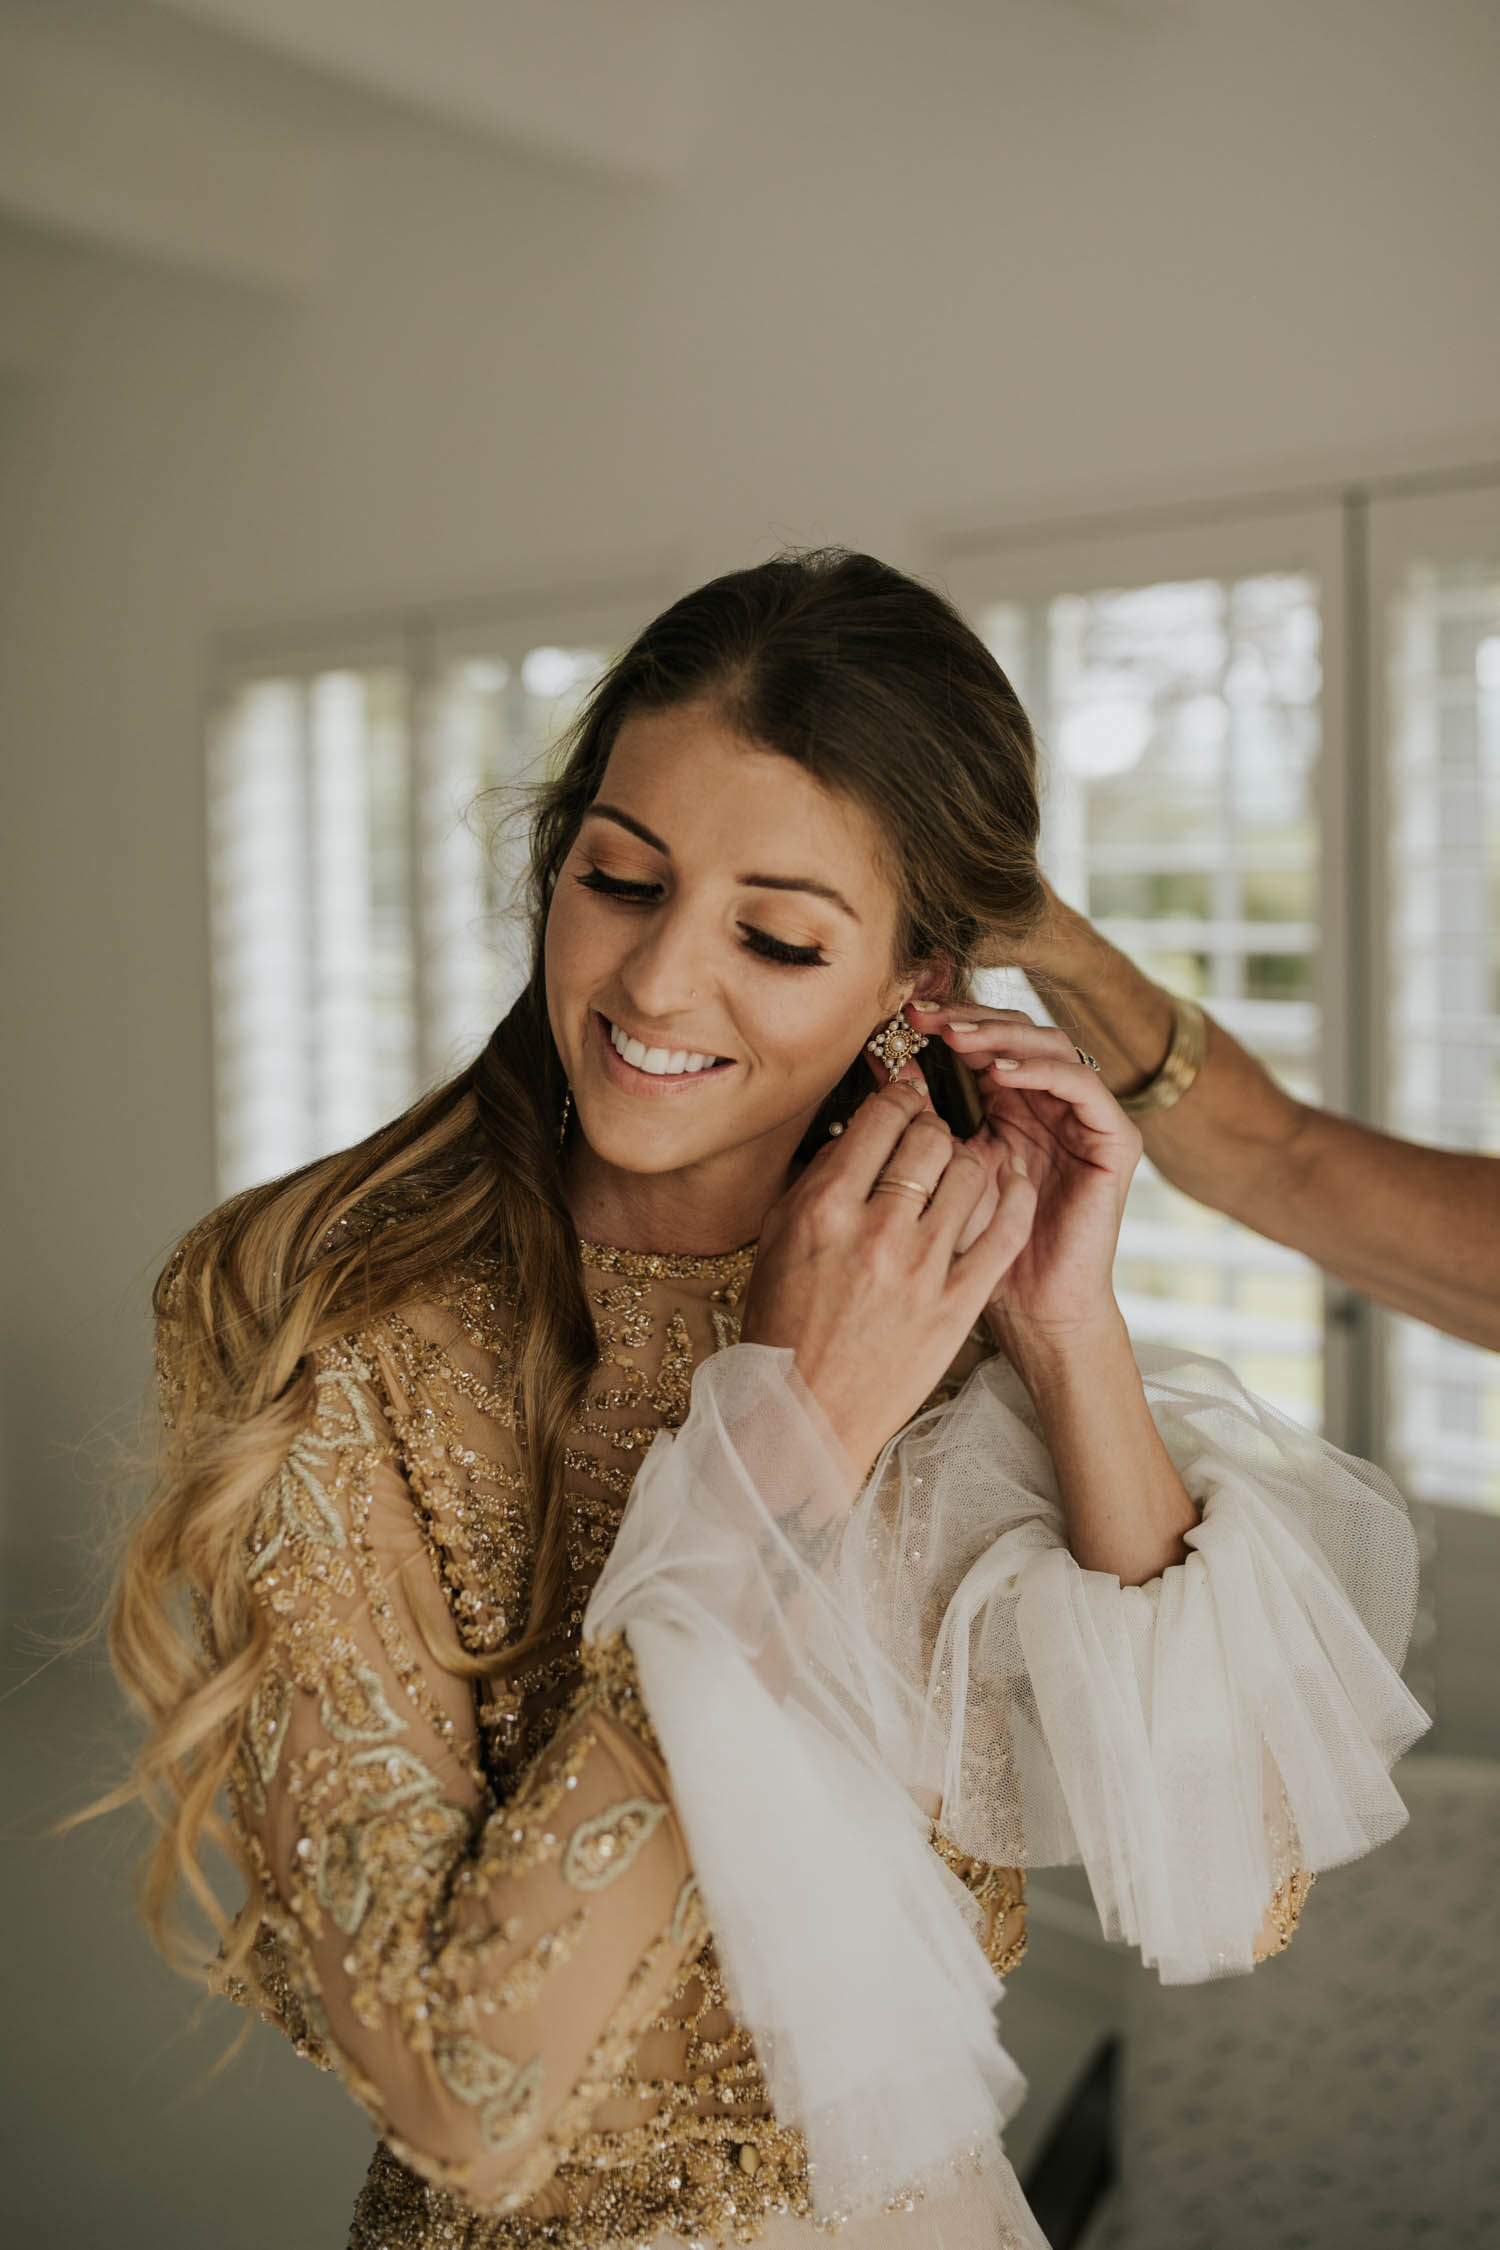 Bohemian bride with long curly blonde hair wearing gold detail long sleeve wedding dress puts on Bo and Luca earrings